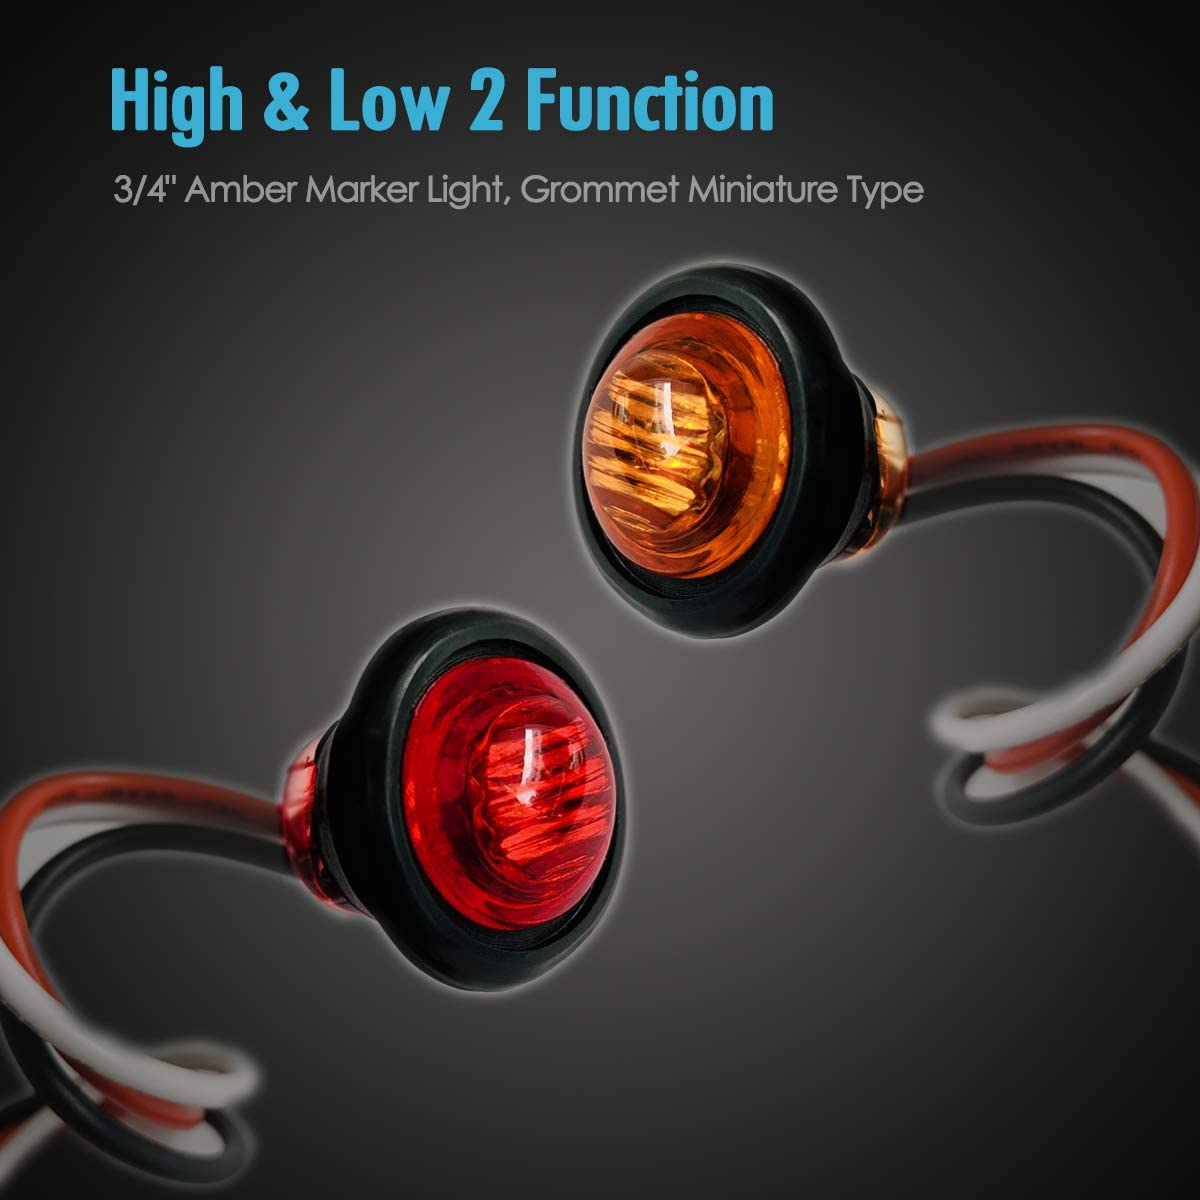 TCTAuto 3//4 LED Multi Utility Marker Light Rubber Grommet Miniature Type with 3 Wire Dual Function High /& Low Brightness Pack of 5 Red /& 5 Amber